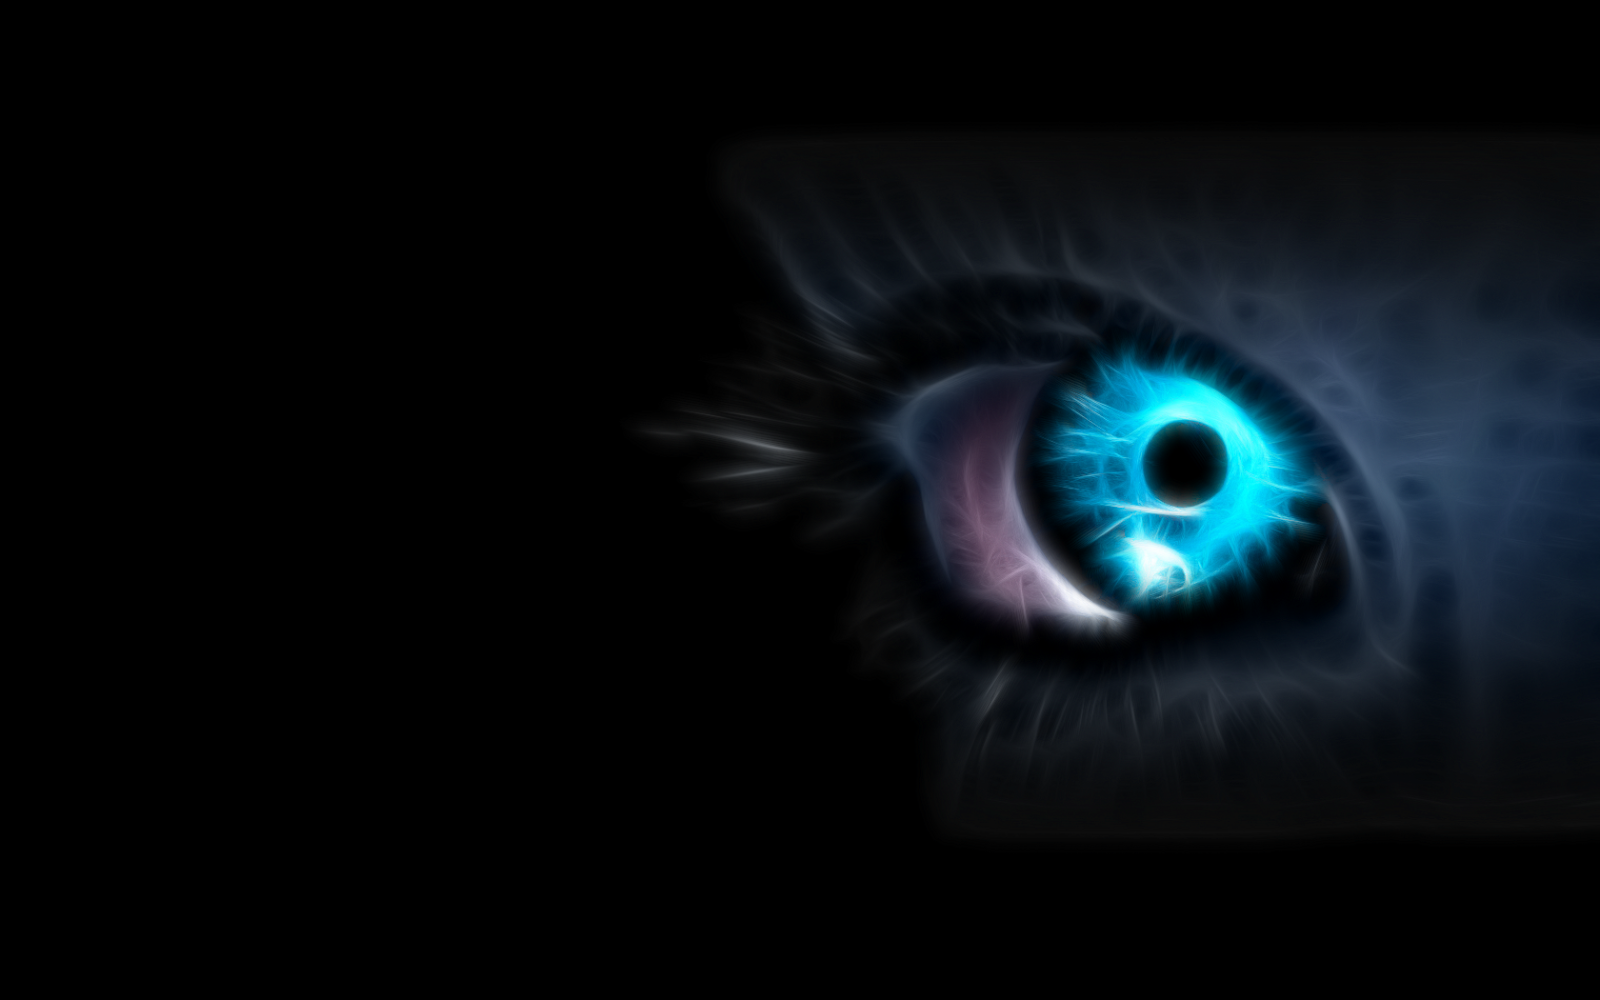 Love Eyes Hd Wallpaper : Eyes HD Wallpapers